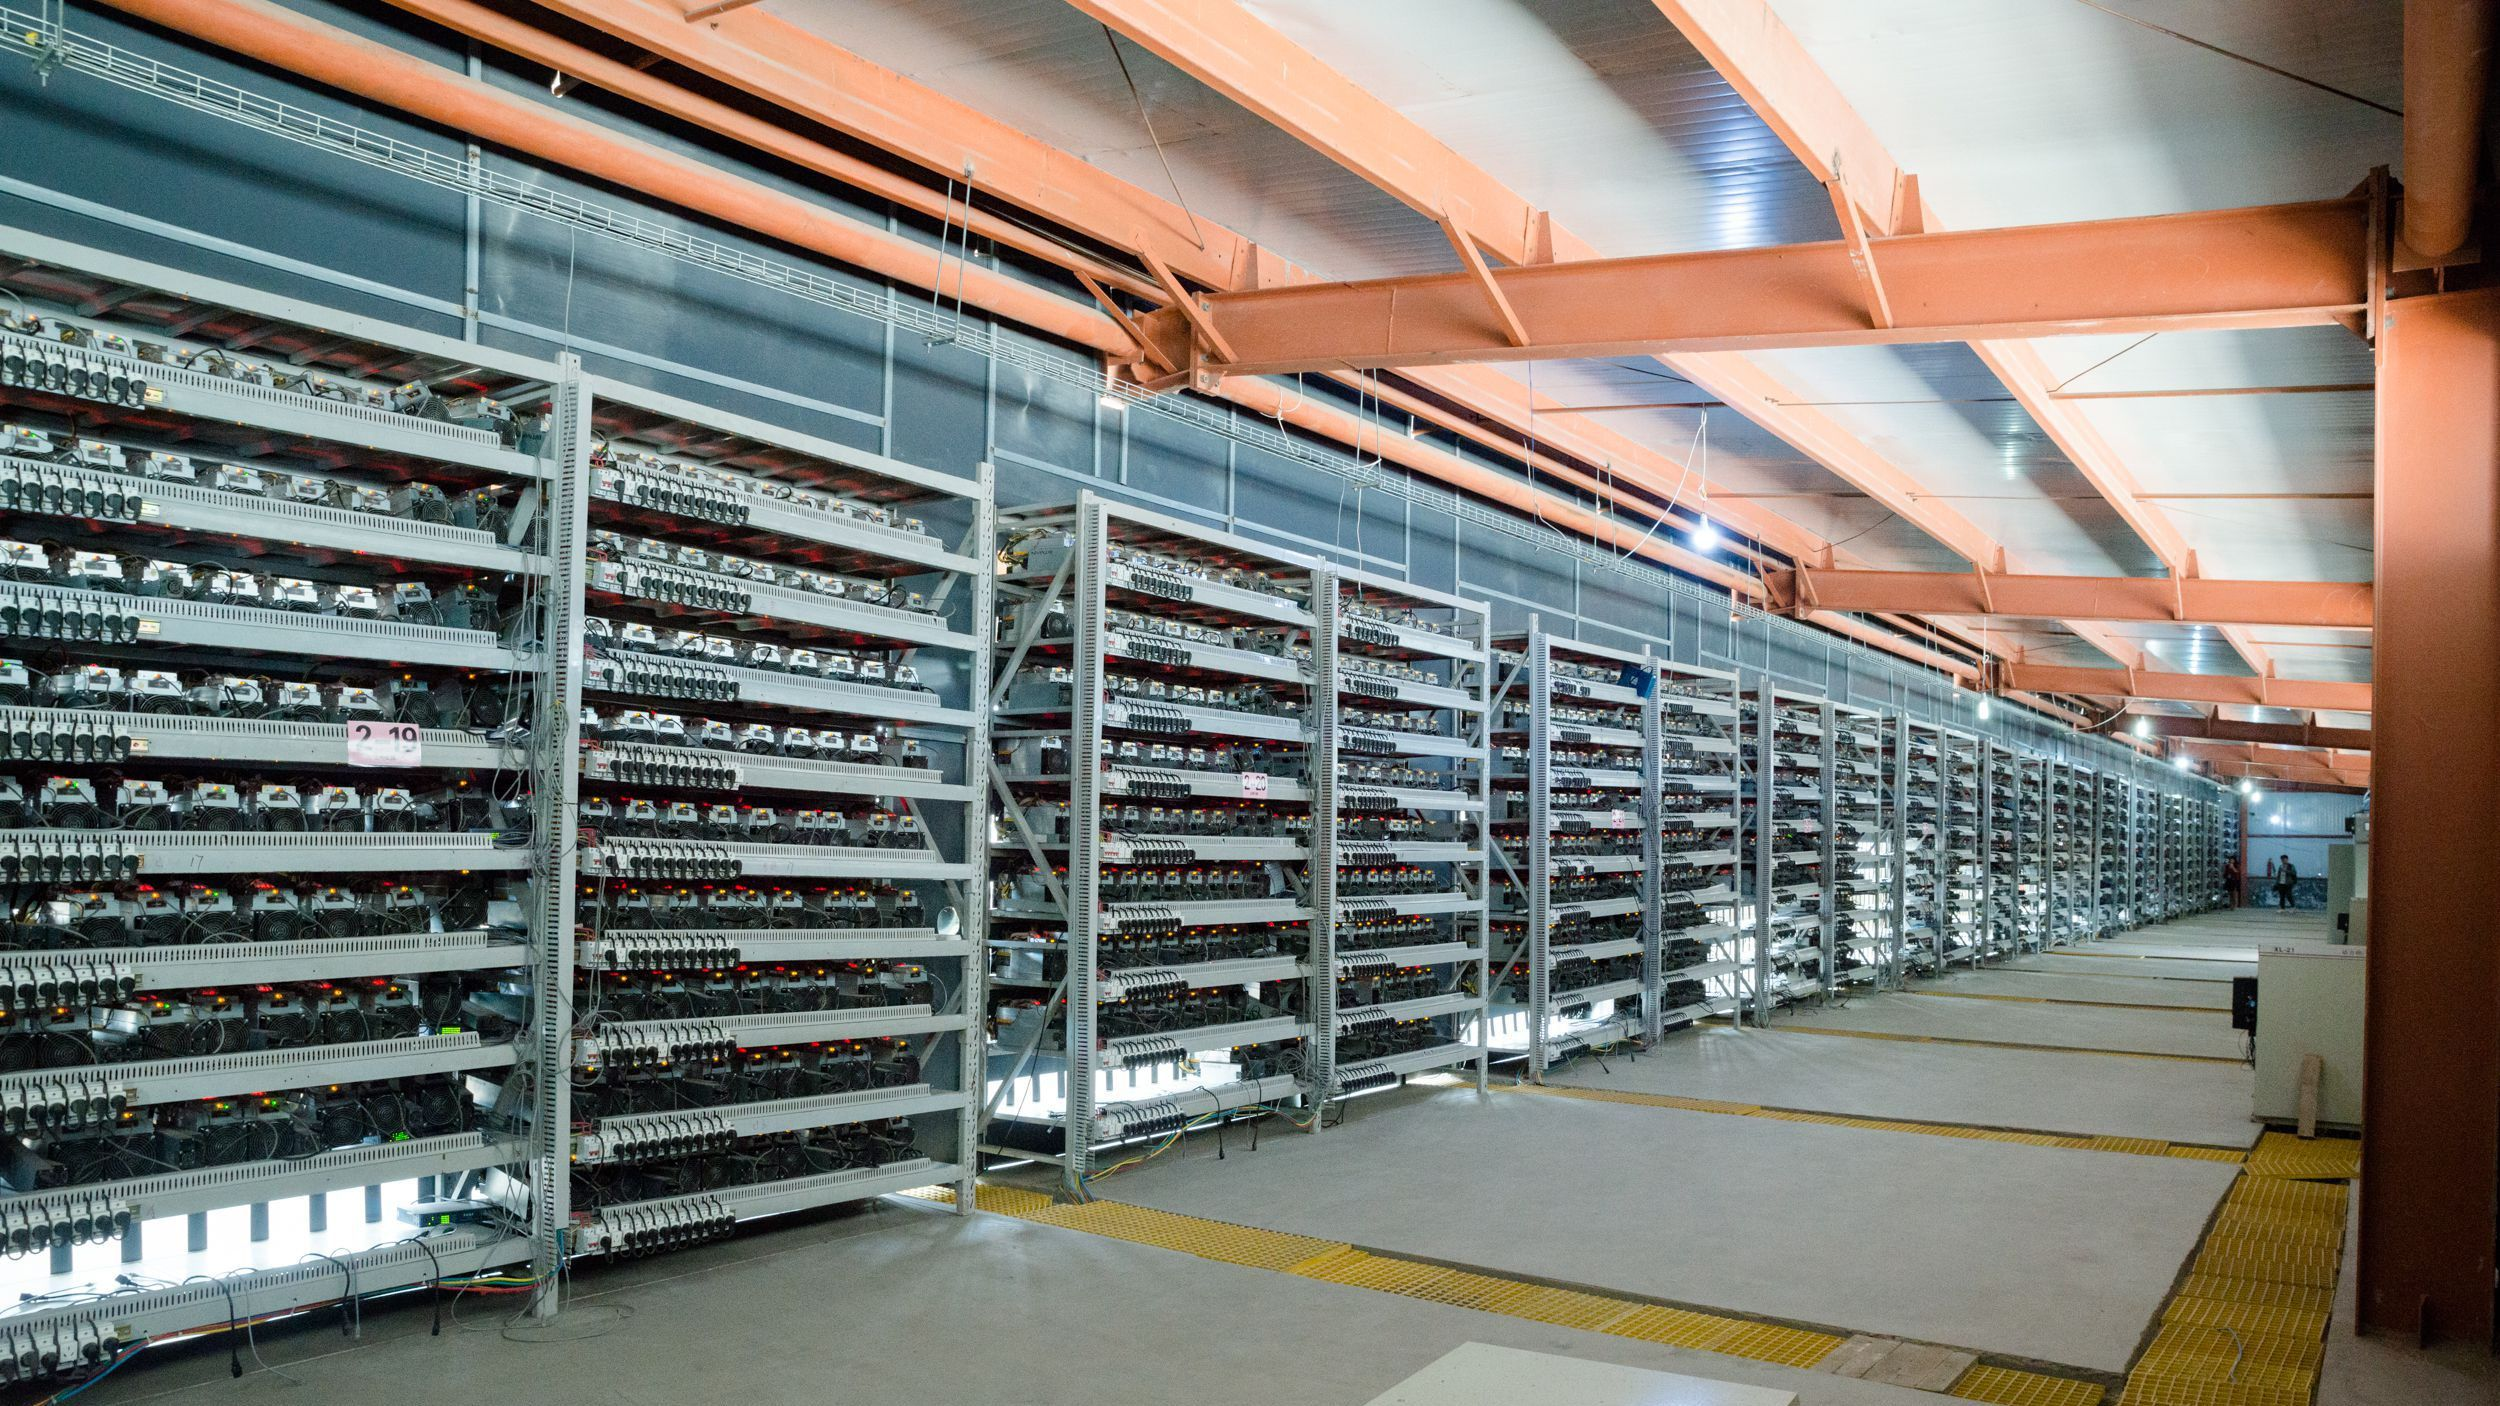 A rack of bitcoin miners at Bitmain's facility in Ordos, Inner Mongolia.